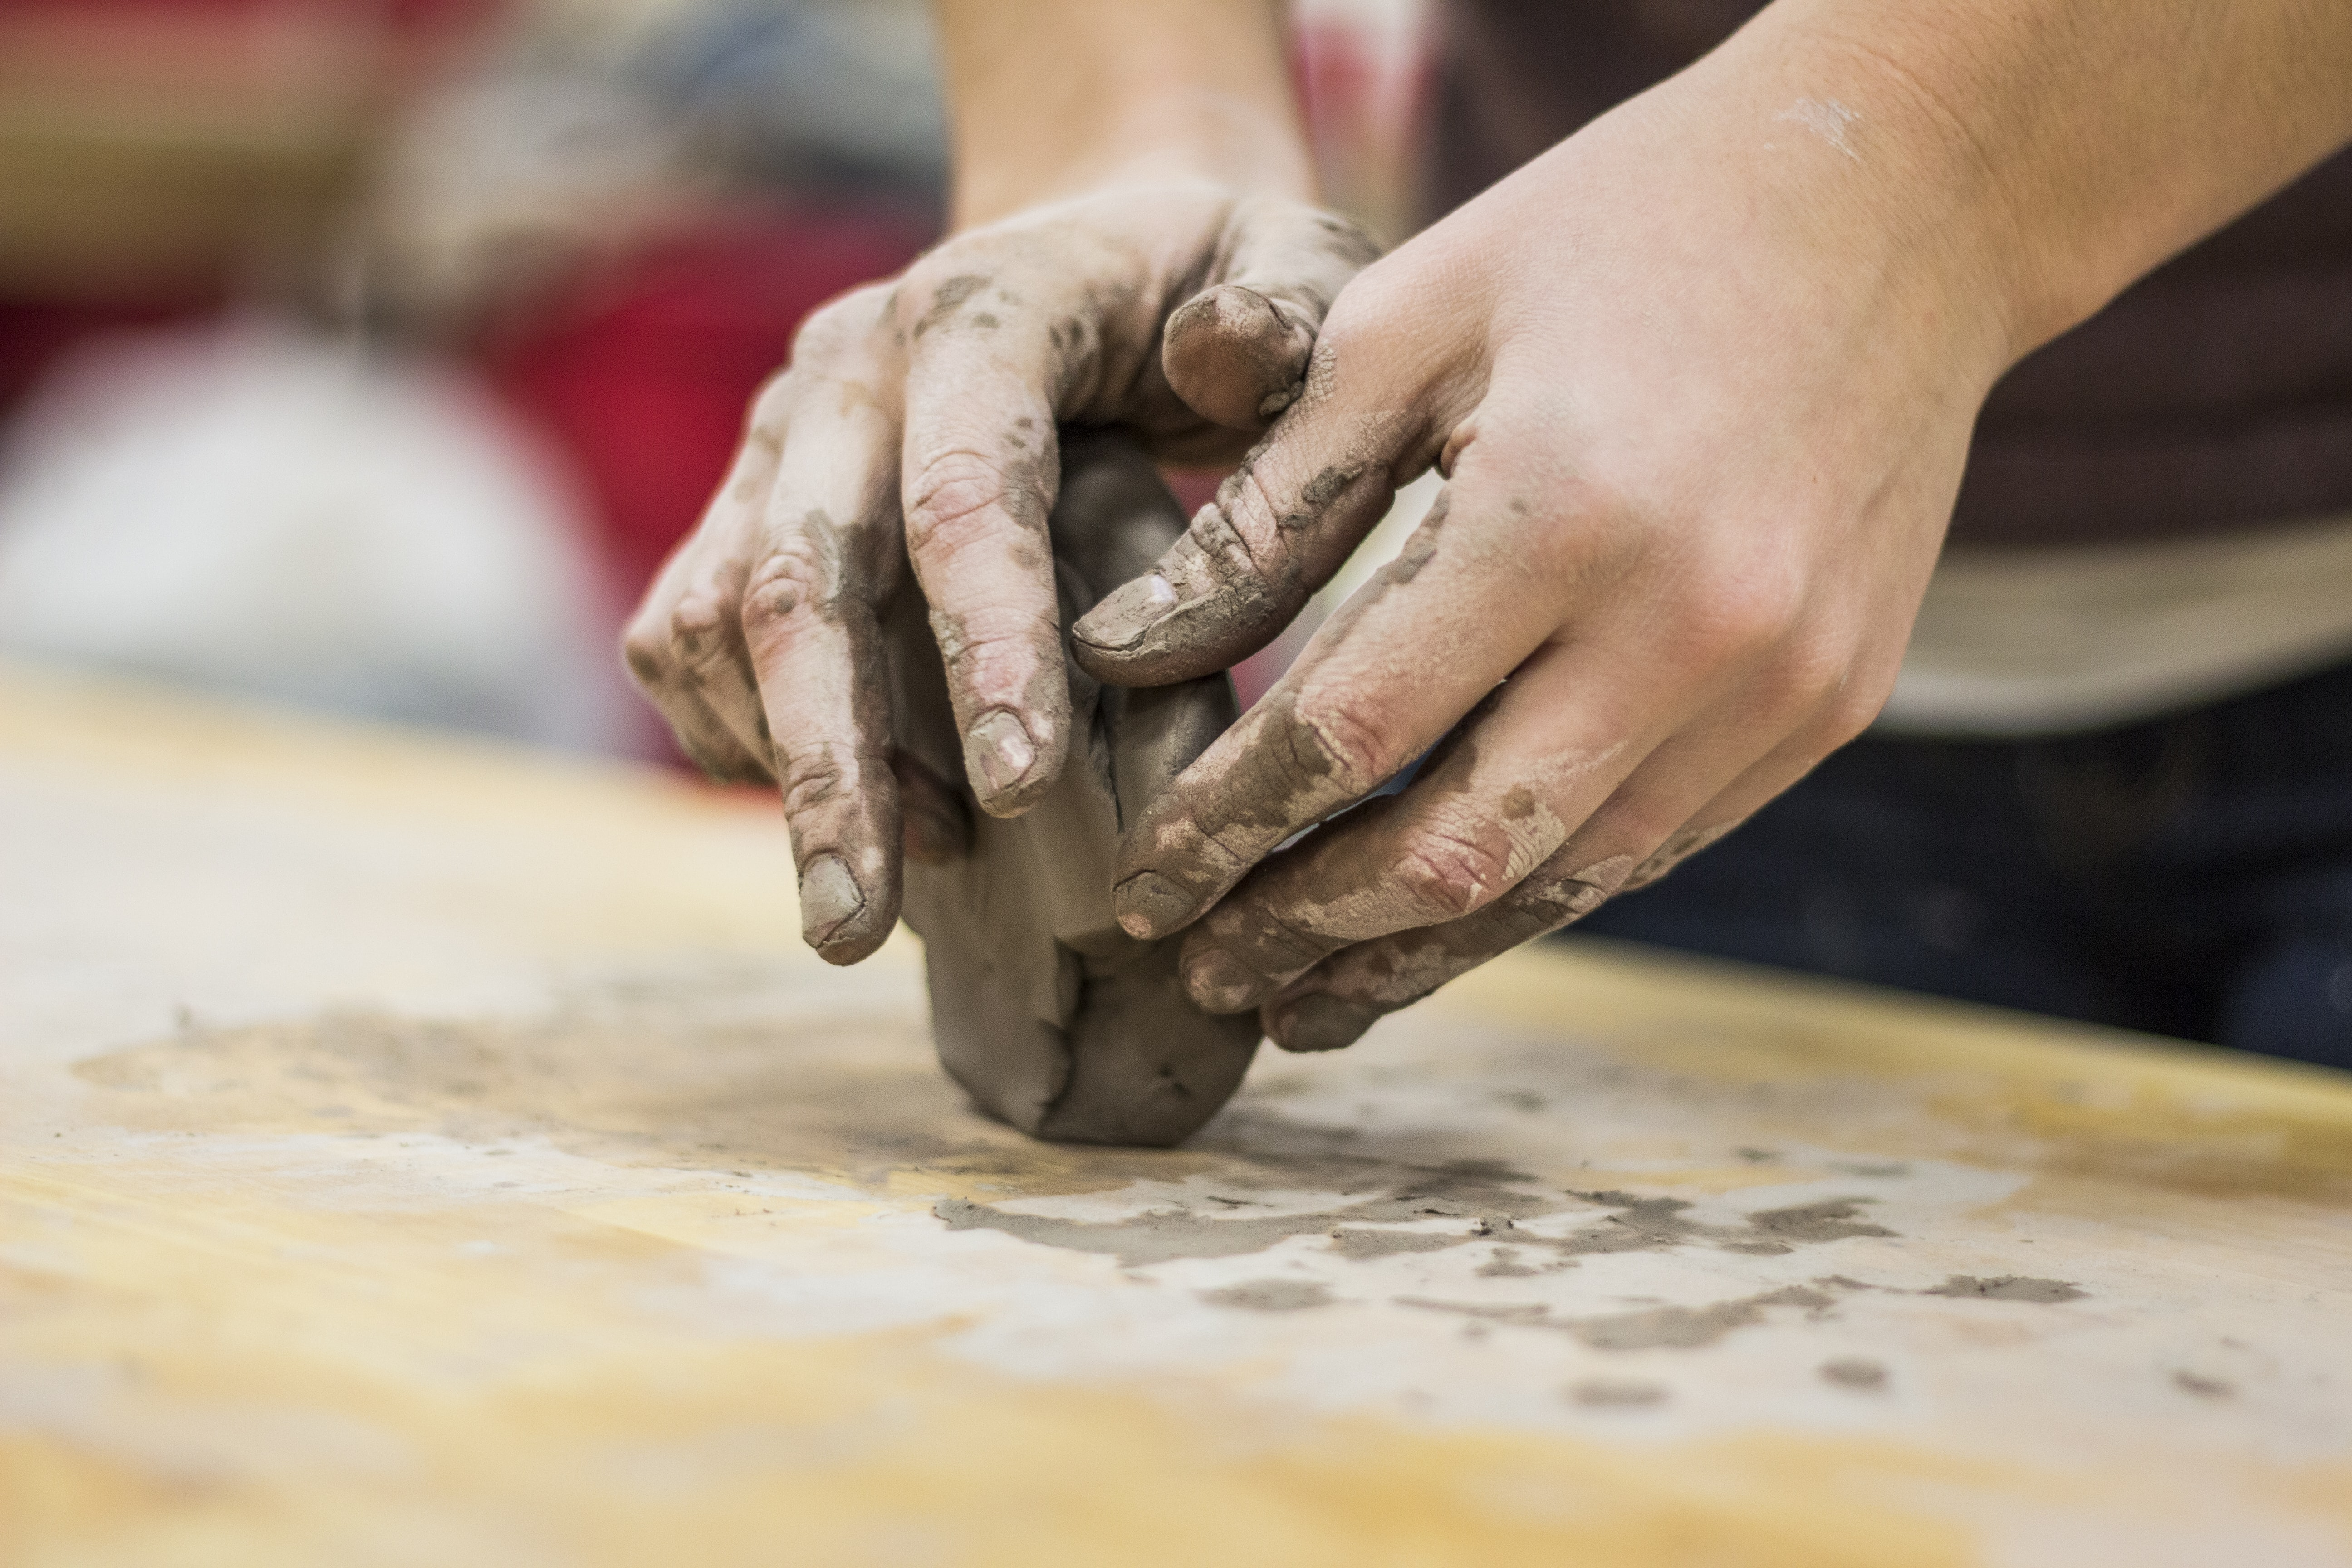 A clay stained hand of a potter engaging in a craft work of pottery or molding